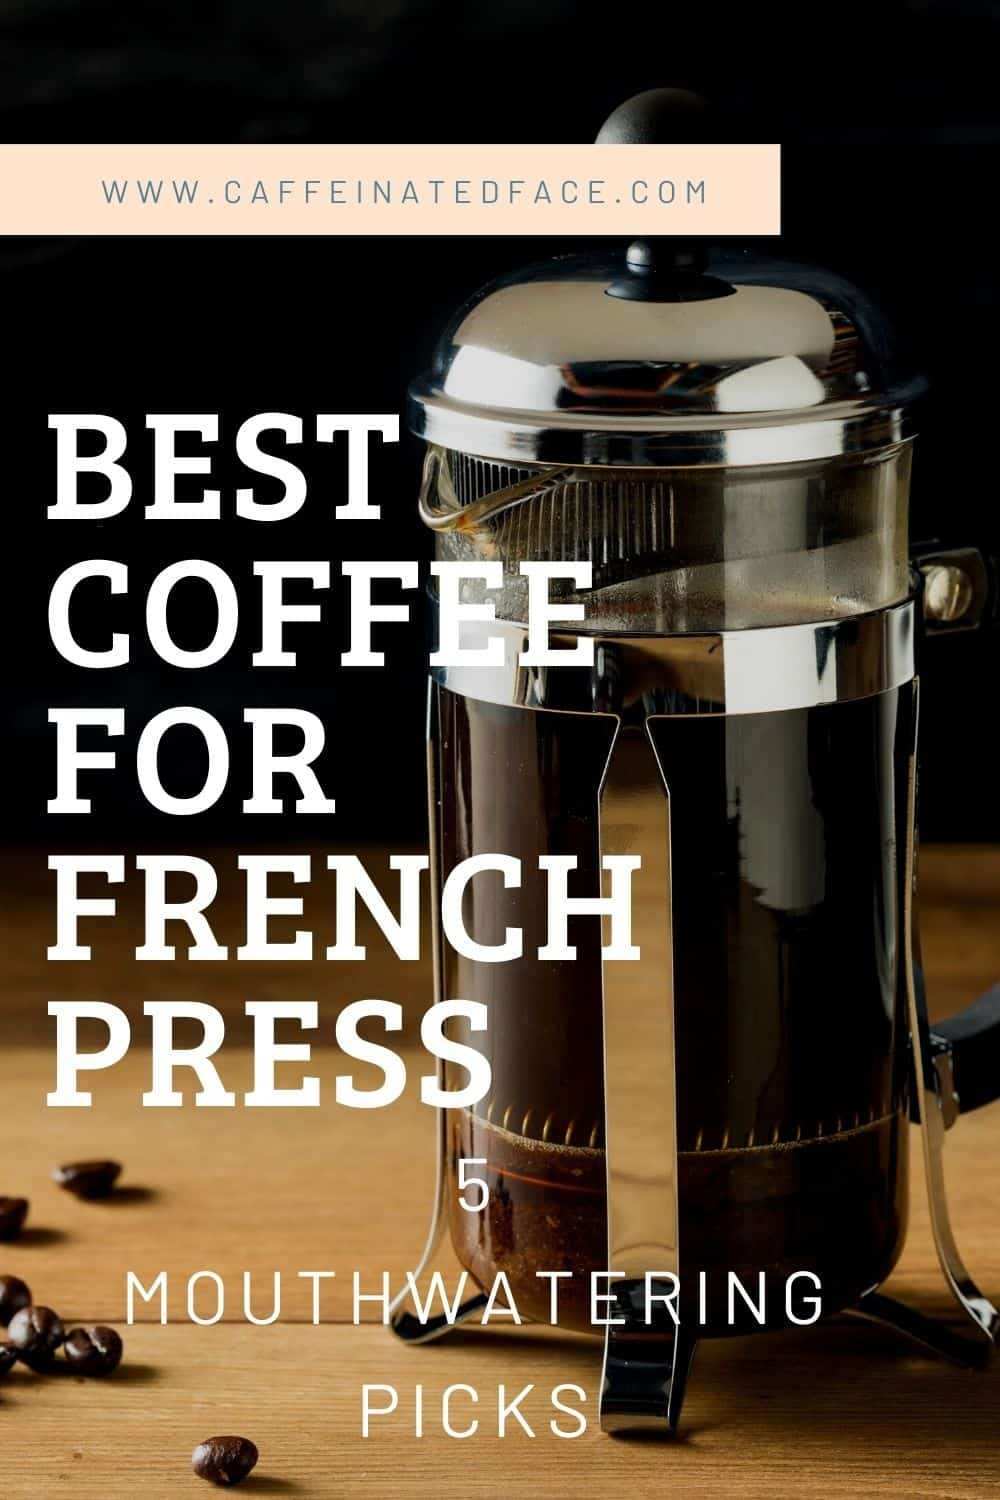 BEST COFFEE FOR FRENCH PRESS-